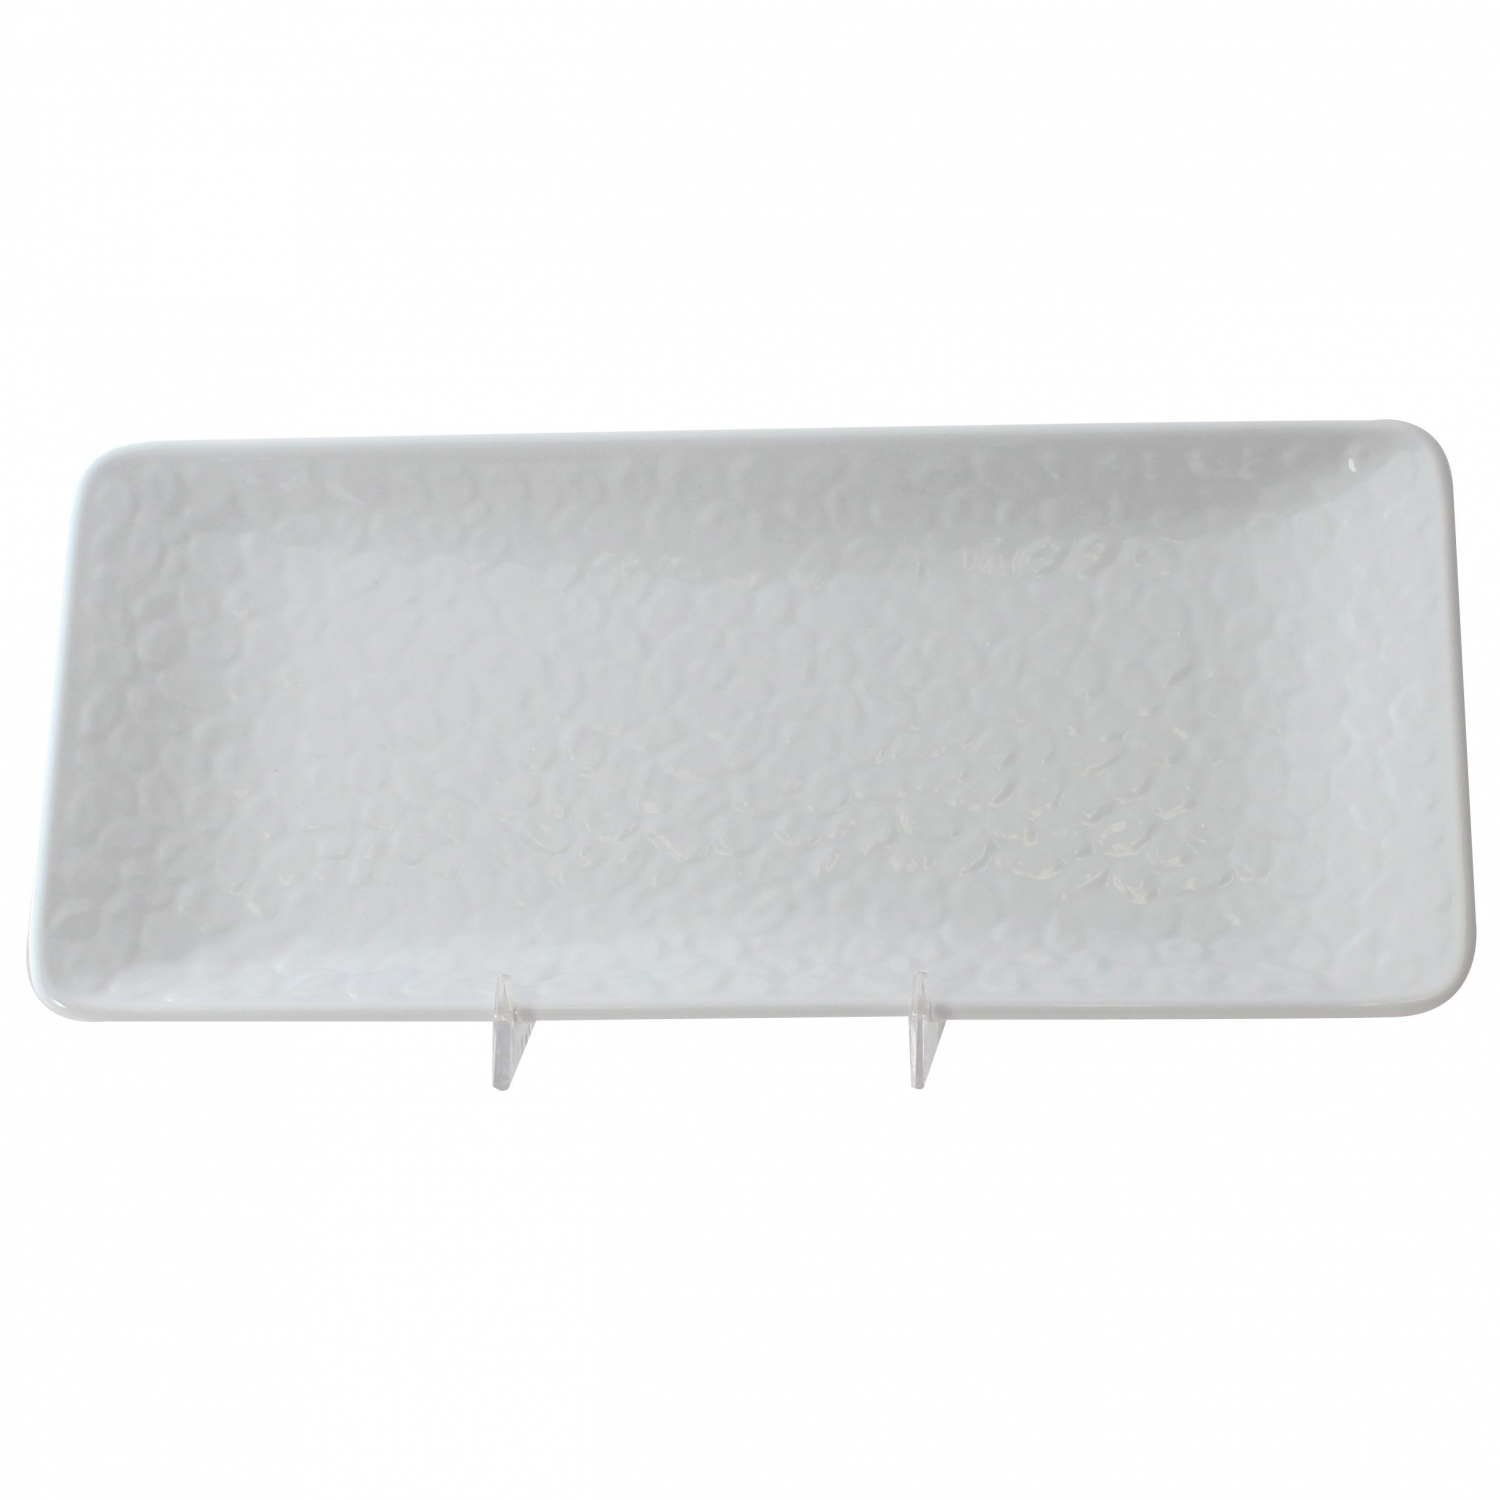 "Thunder Group 24110WT Classic White Melamine Rectangular Plate 11-1/4"" x 5"" - 1 doz."